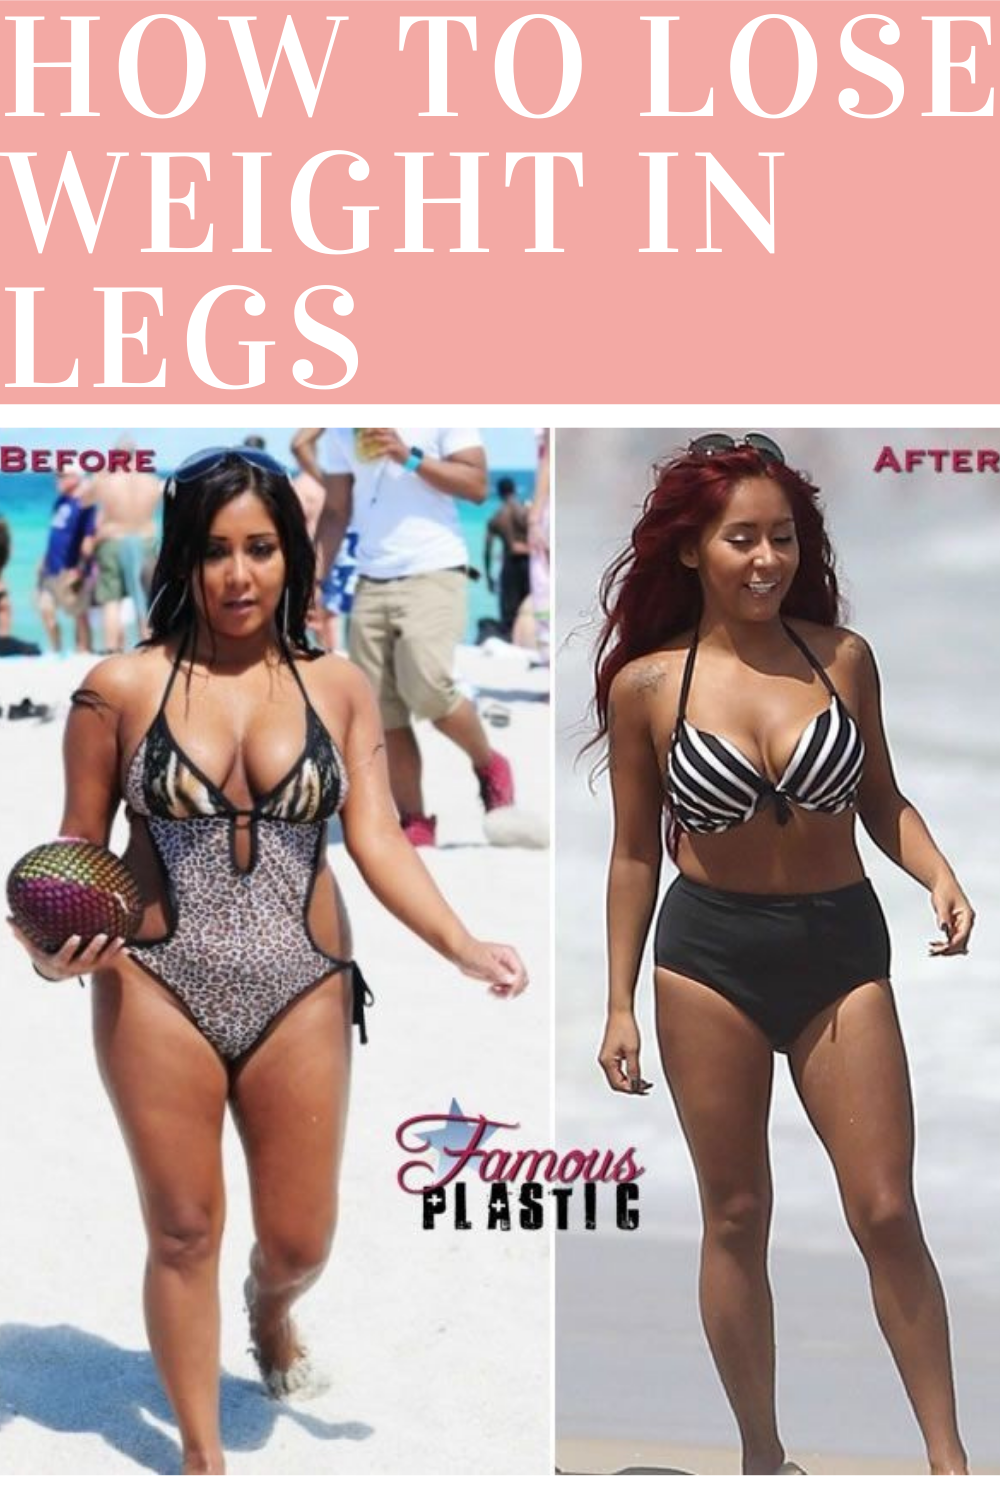 How to Lose Weight in Legs